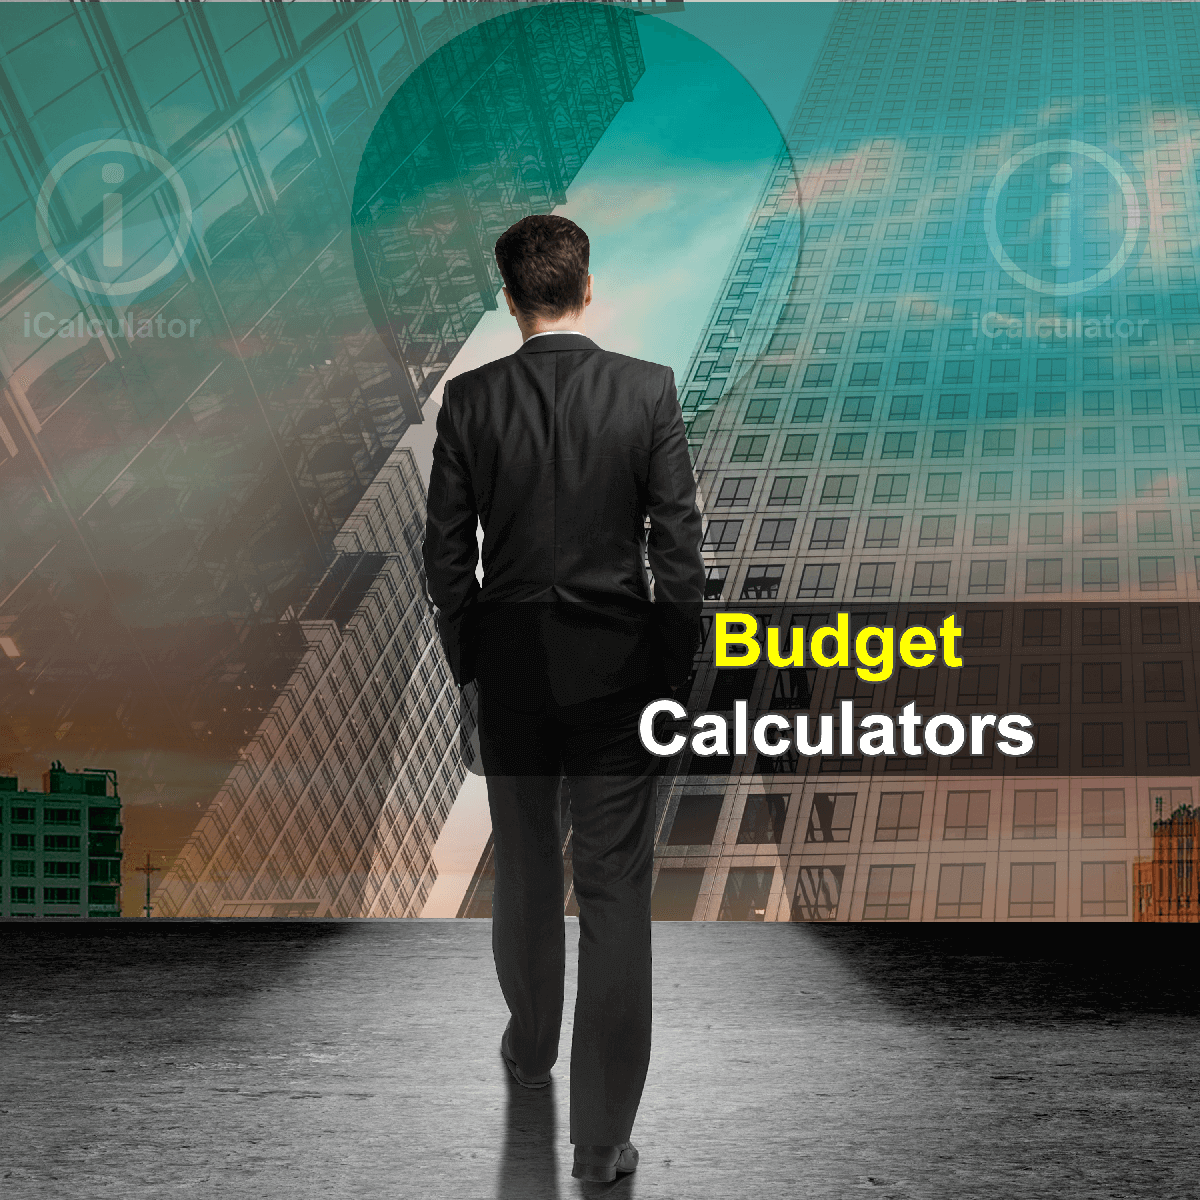 Budget Calculators. This image shows a student considering the merits of producing a budget to help plan their finances whilst at university using the budget calculators provided by iCalculator.